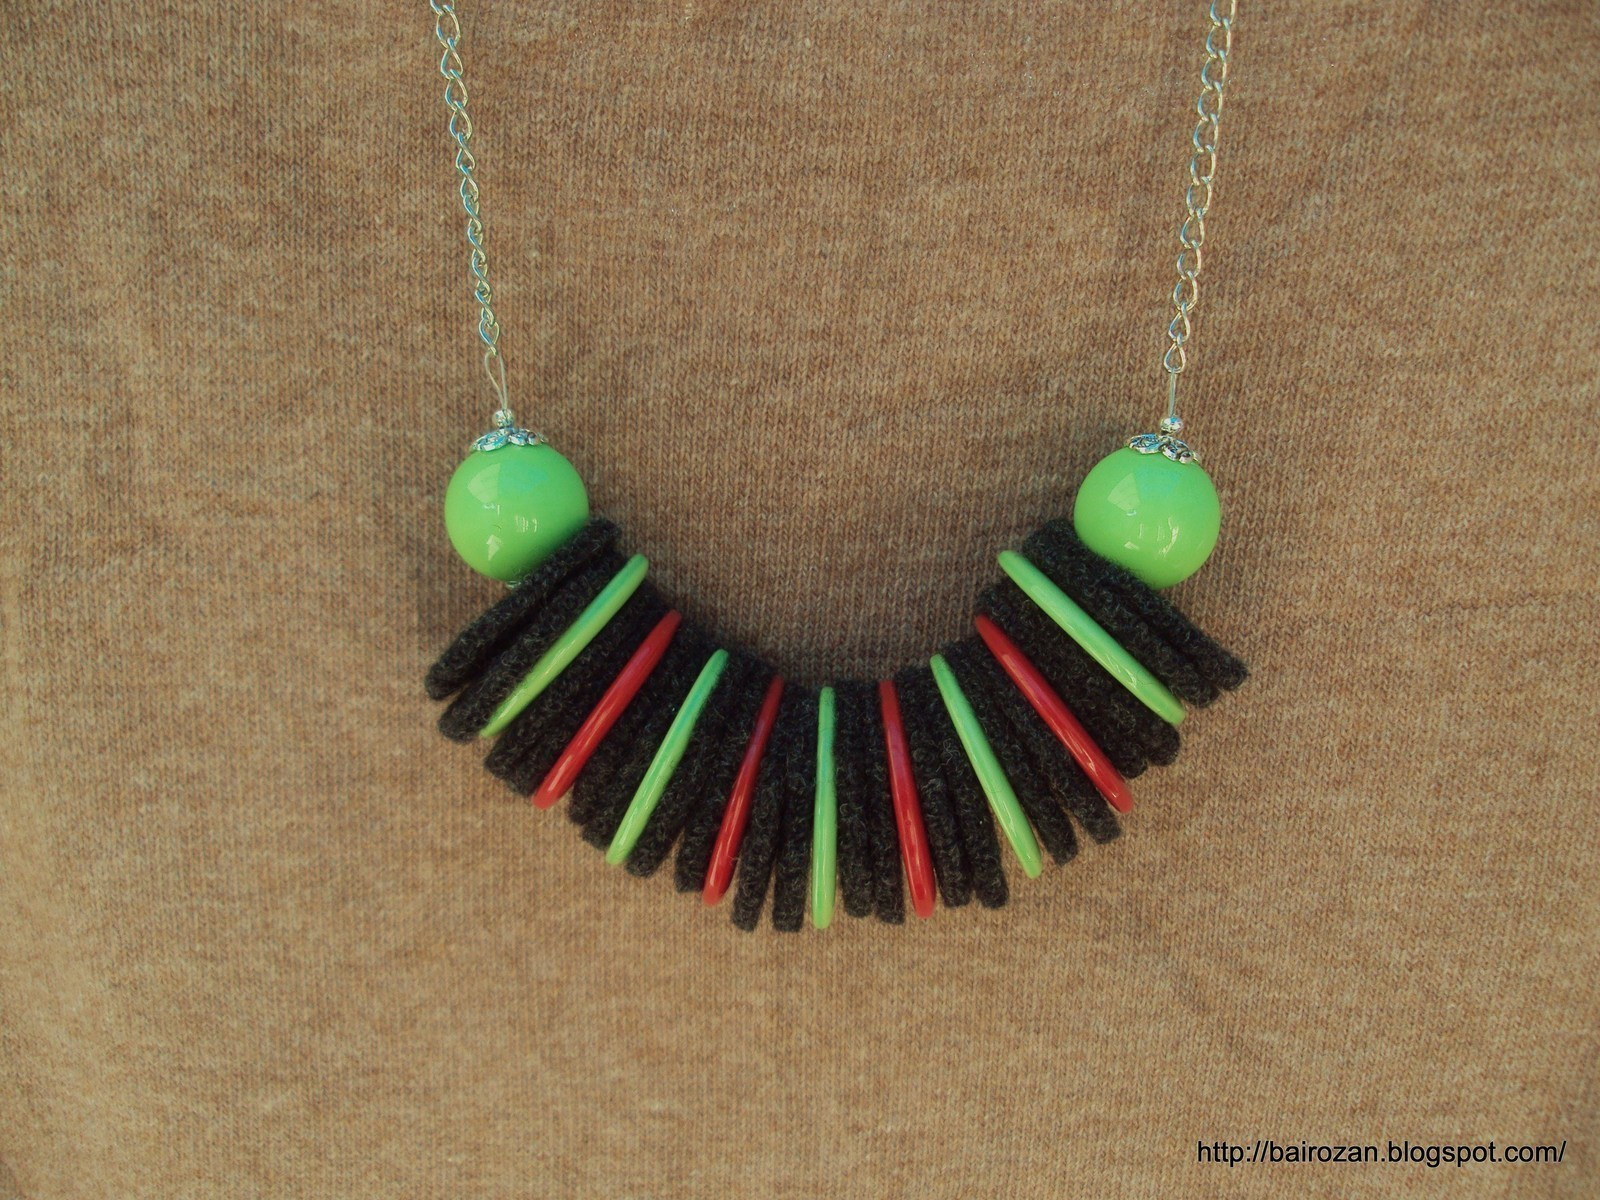 Felt Necklaces From Recycled Clothes A Fabric Necklace